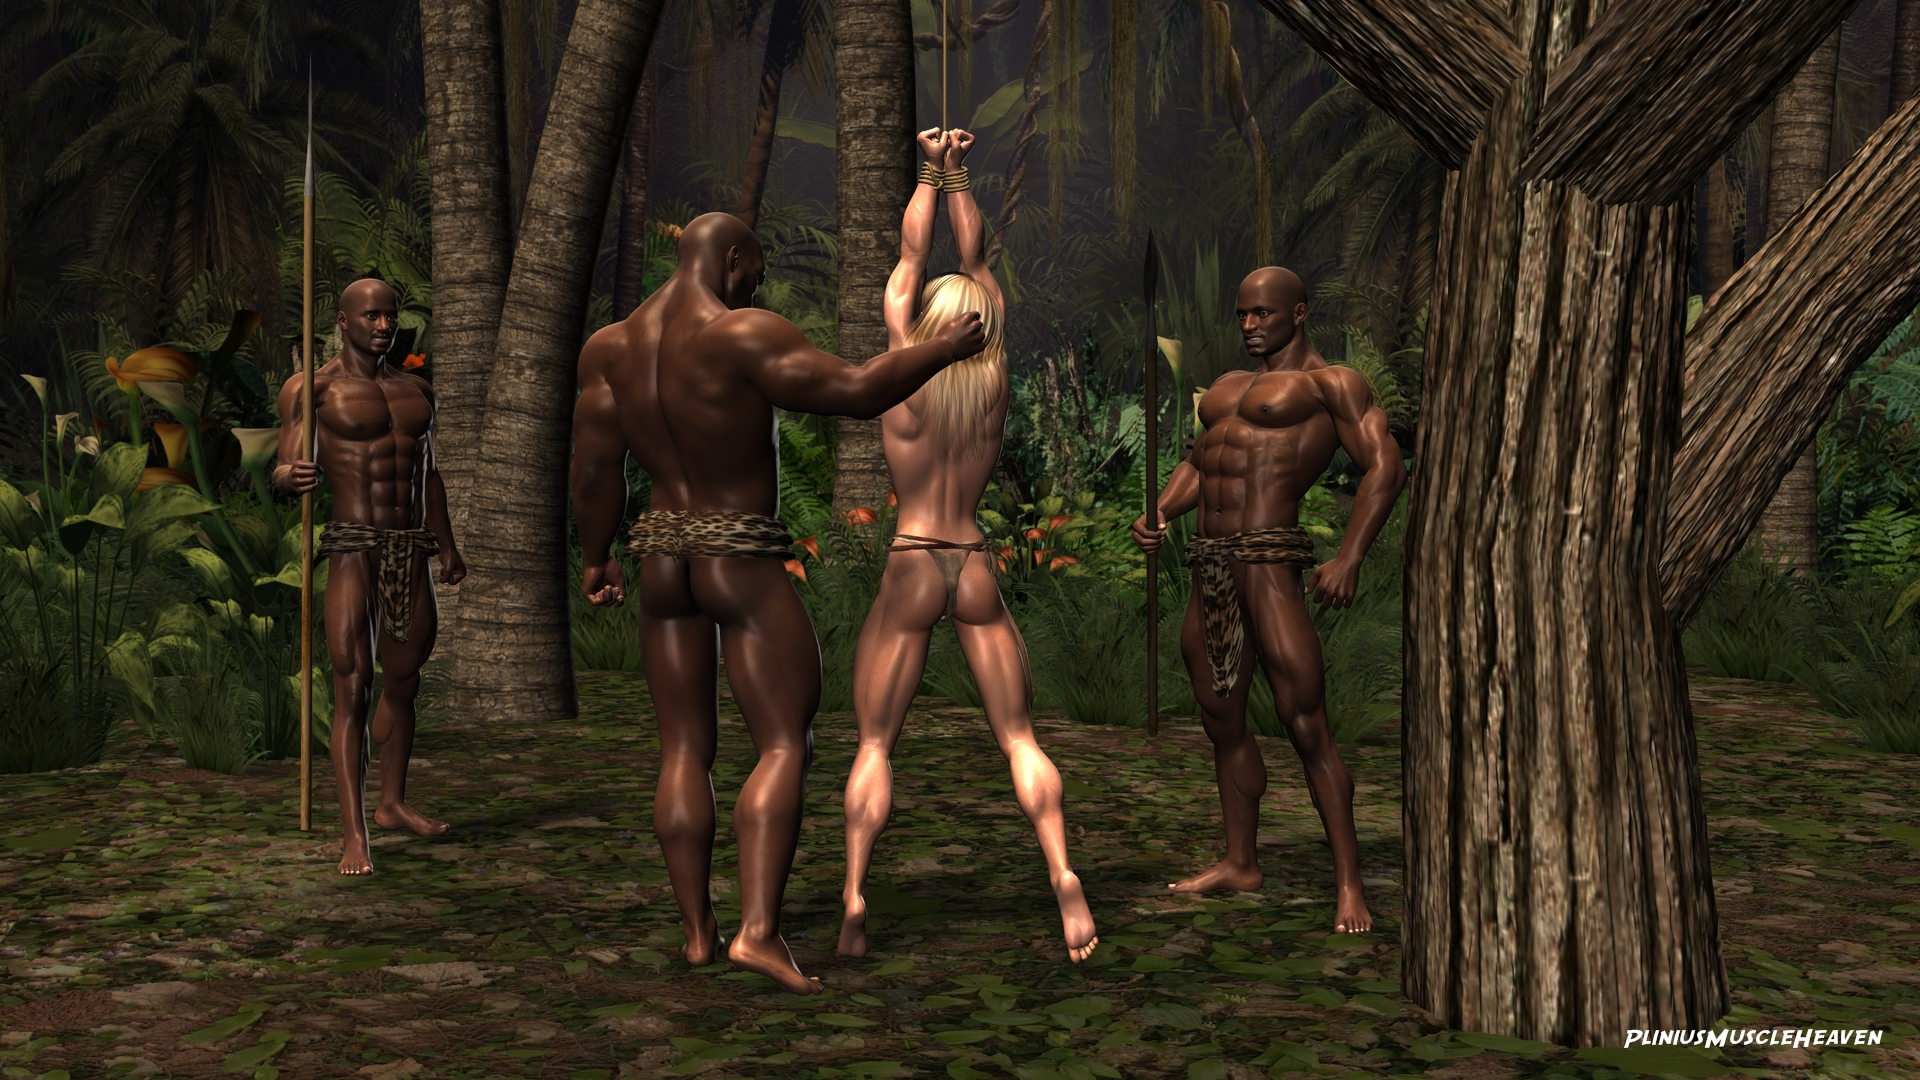 Share your Women captured in the jungle naked apologise, but